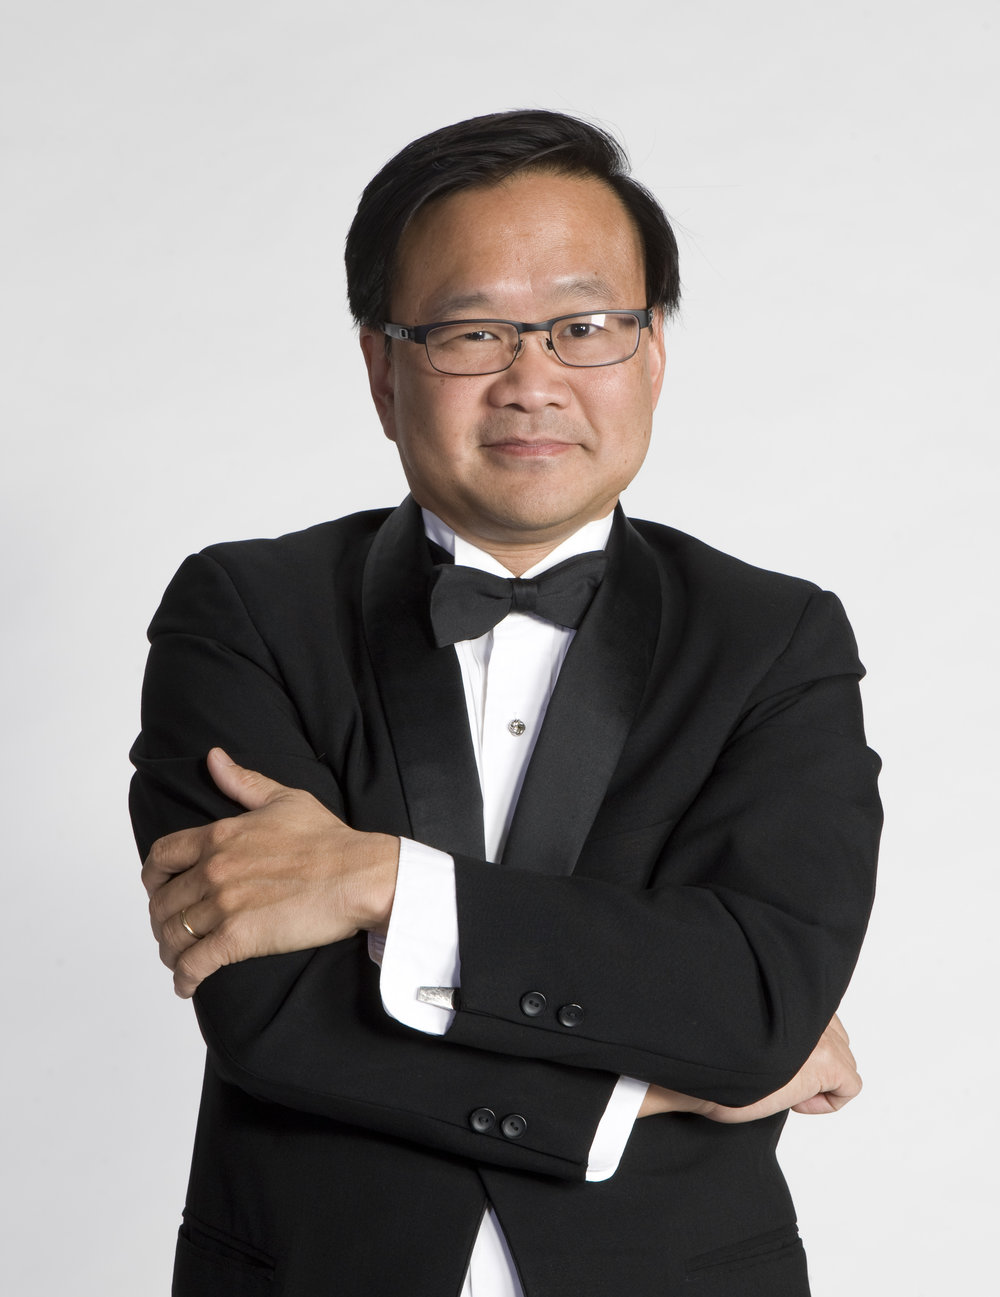 Michael Ching photo by Murray Riss APPROVED.jpg